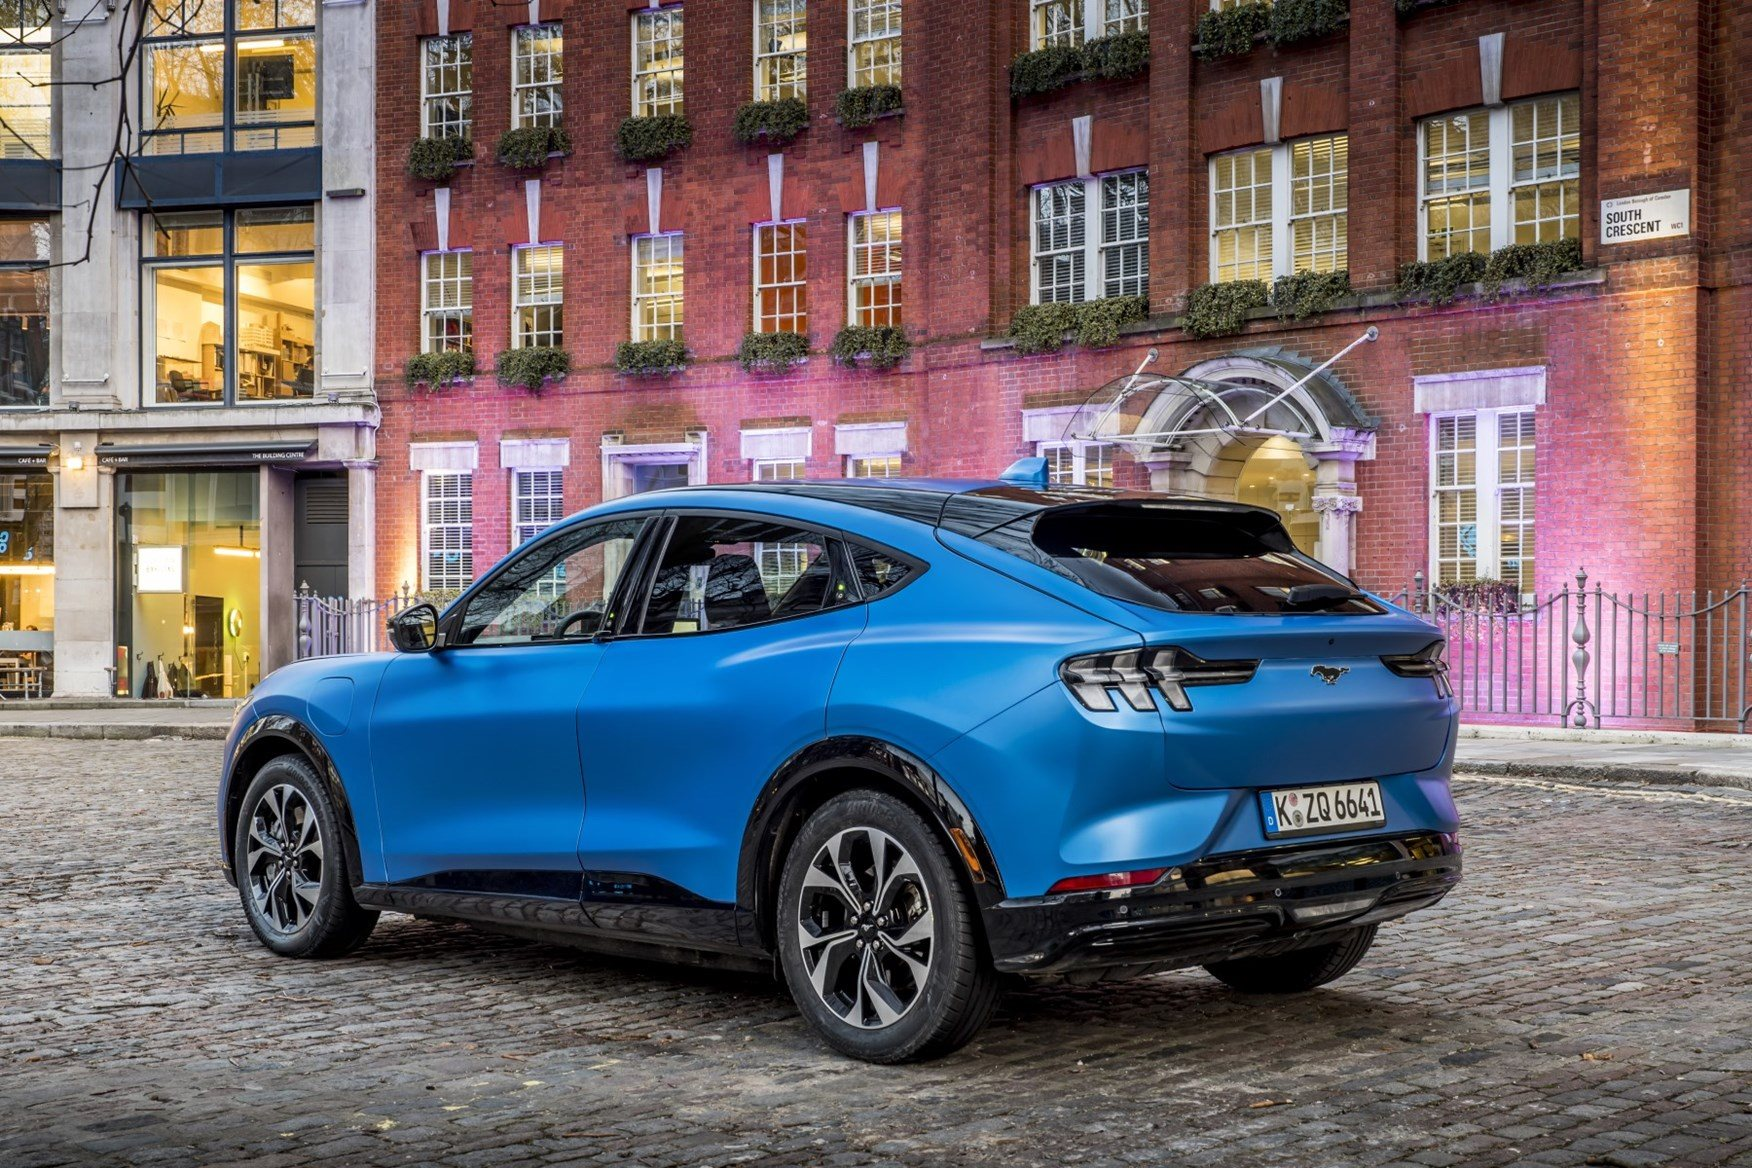 Ford Mustang Mach-E first ride review: on the road in London